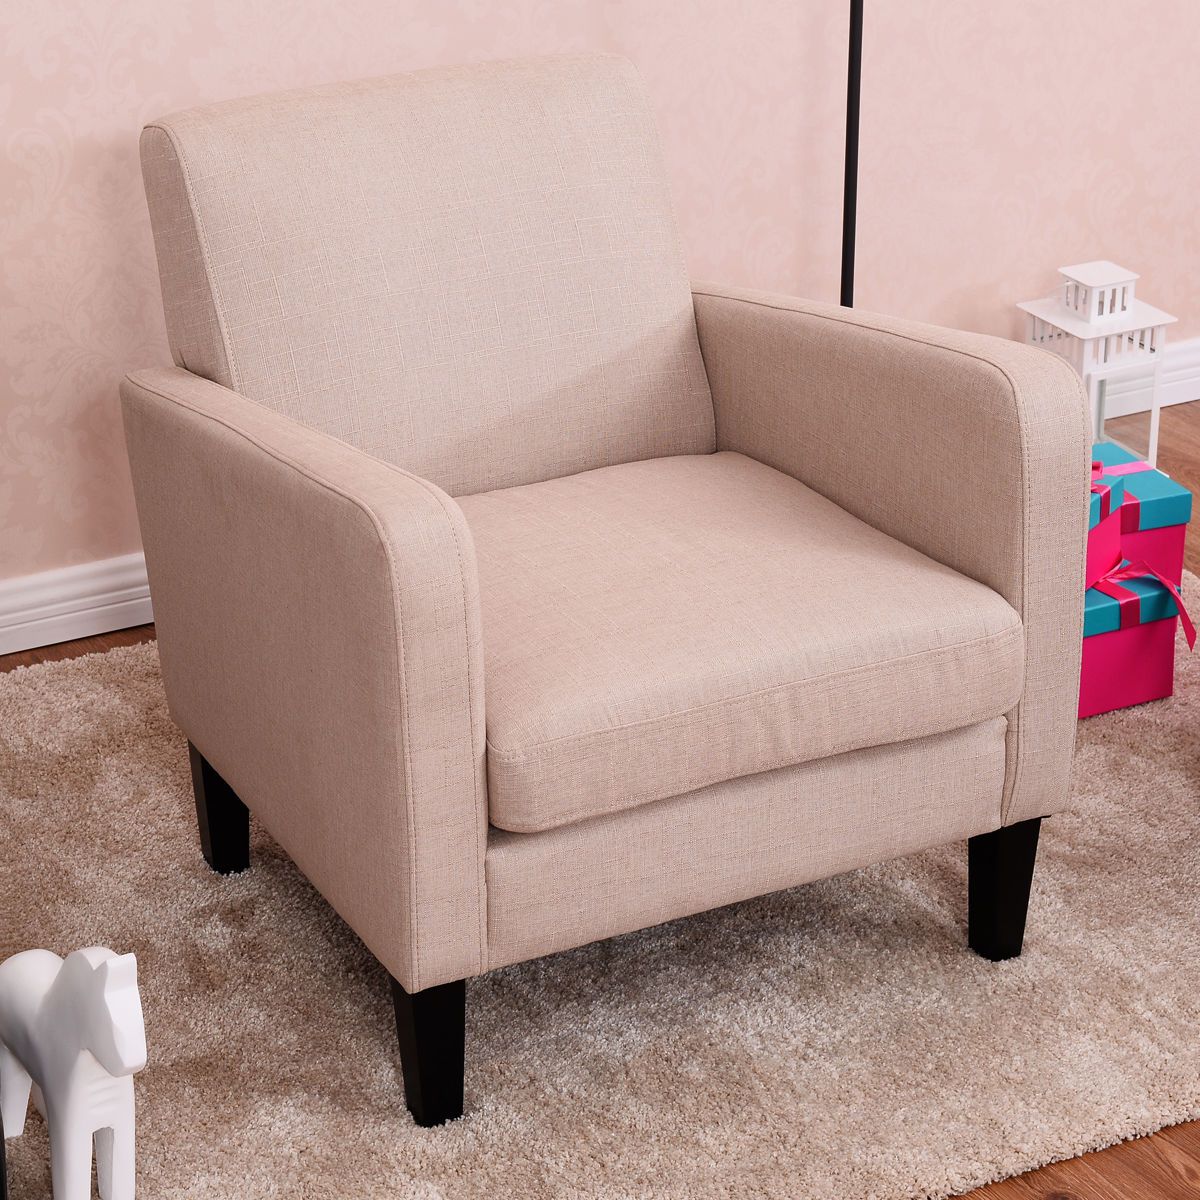 Accent Arm Chairs Us 109 99 Giantex Leisure Arm Chair Accent Single Sofa Fabric Upholstered Living Room Modern Chairs Sofa Home Furniture Hw53954be In Living Room